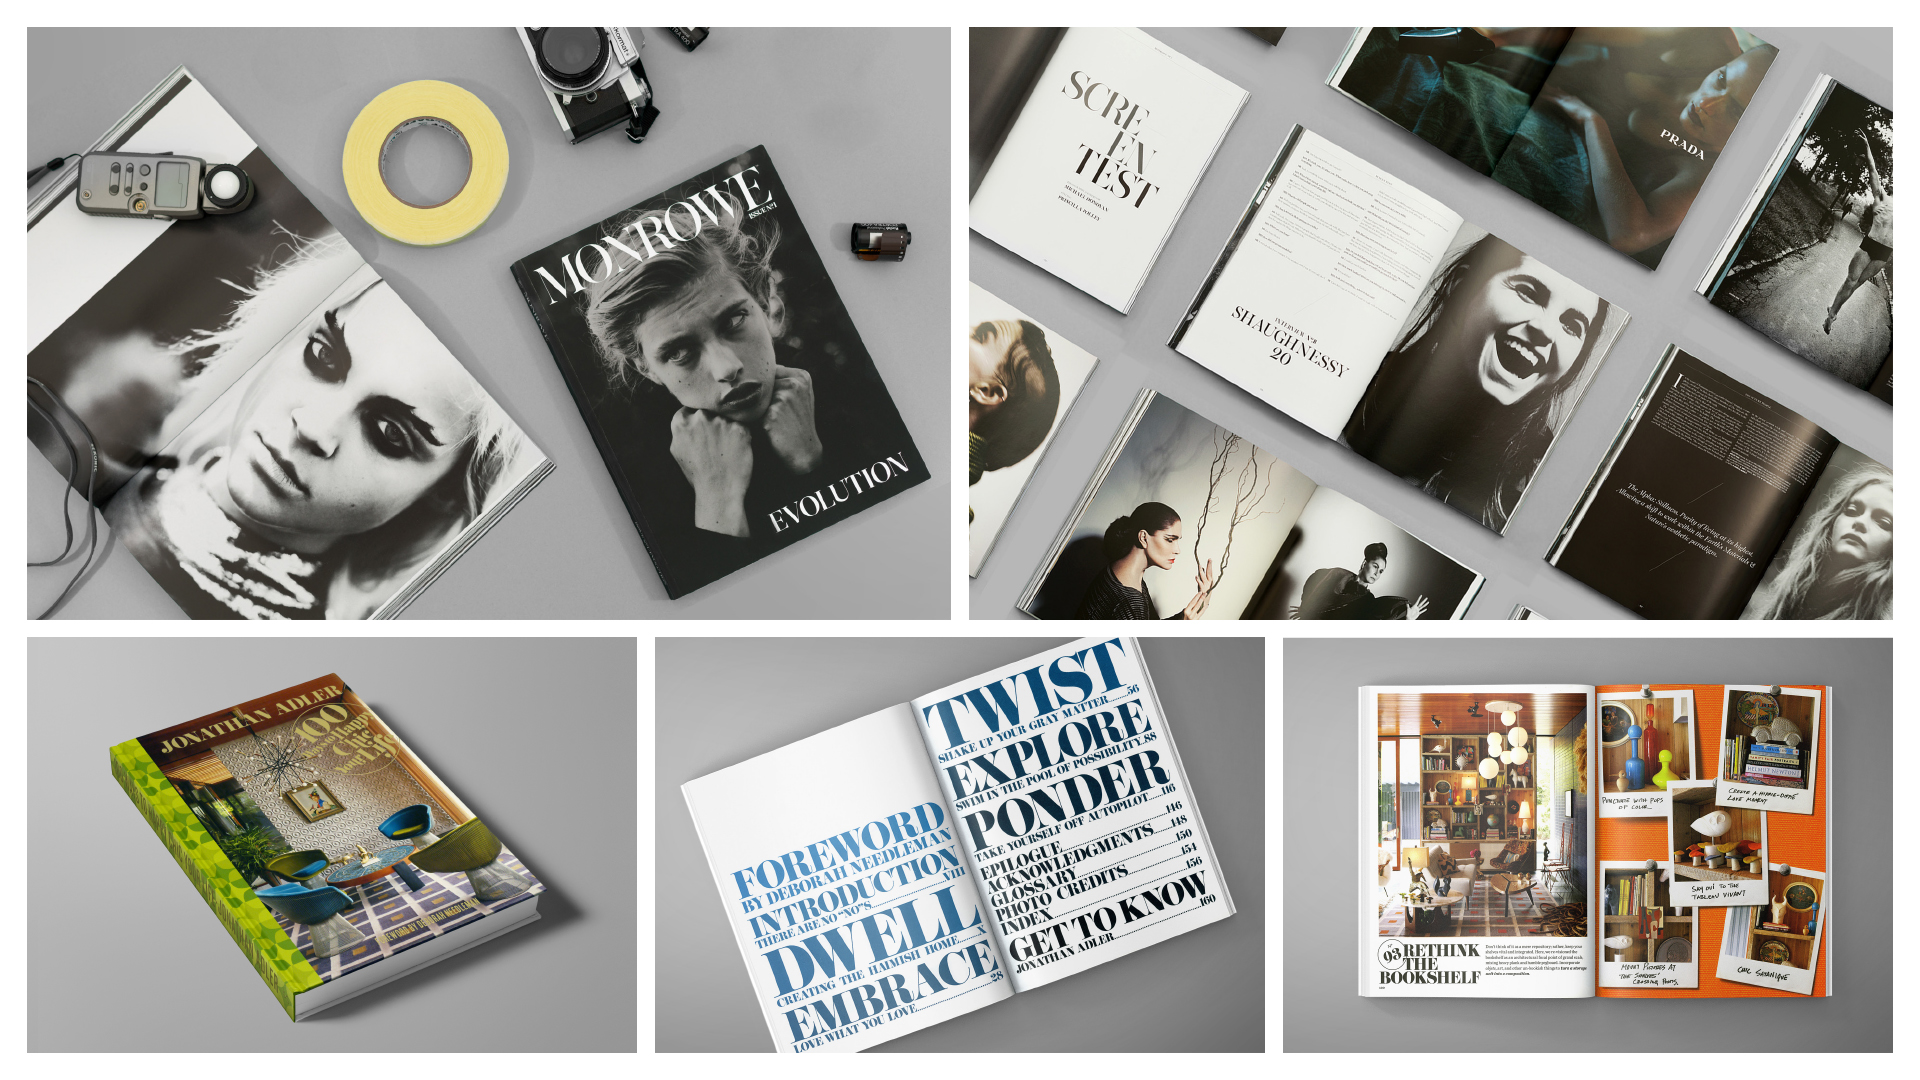 Jd&co. editorial and publishing work